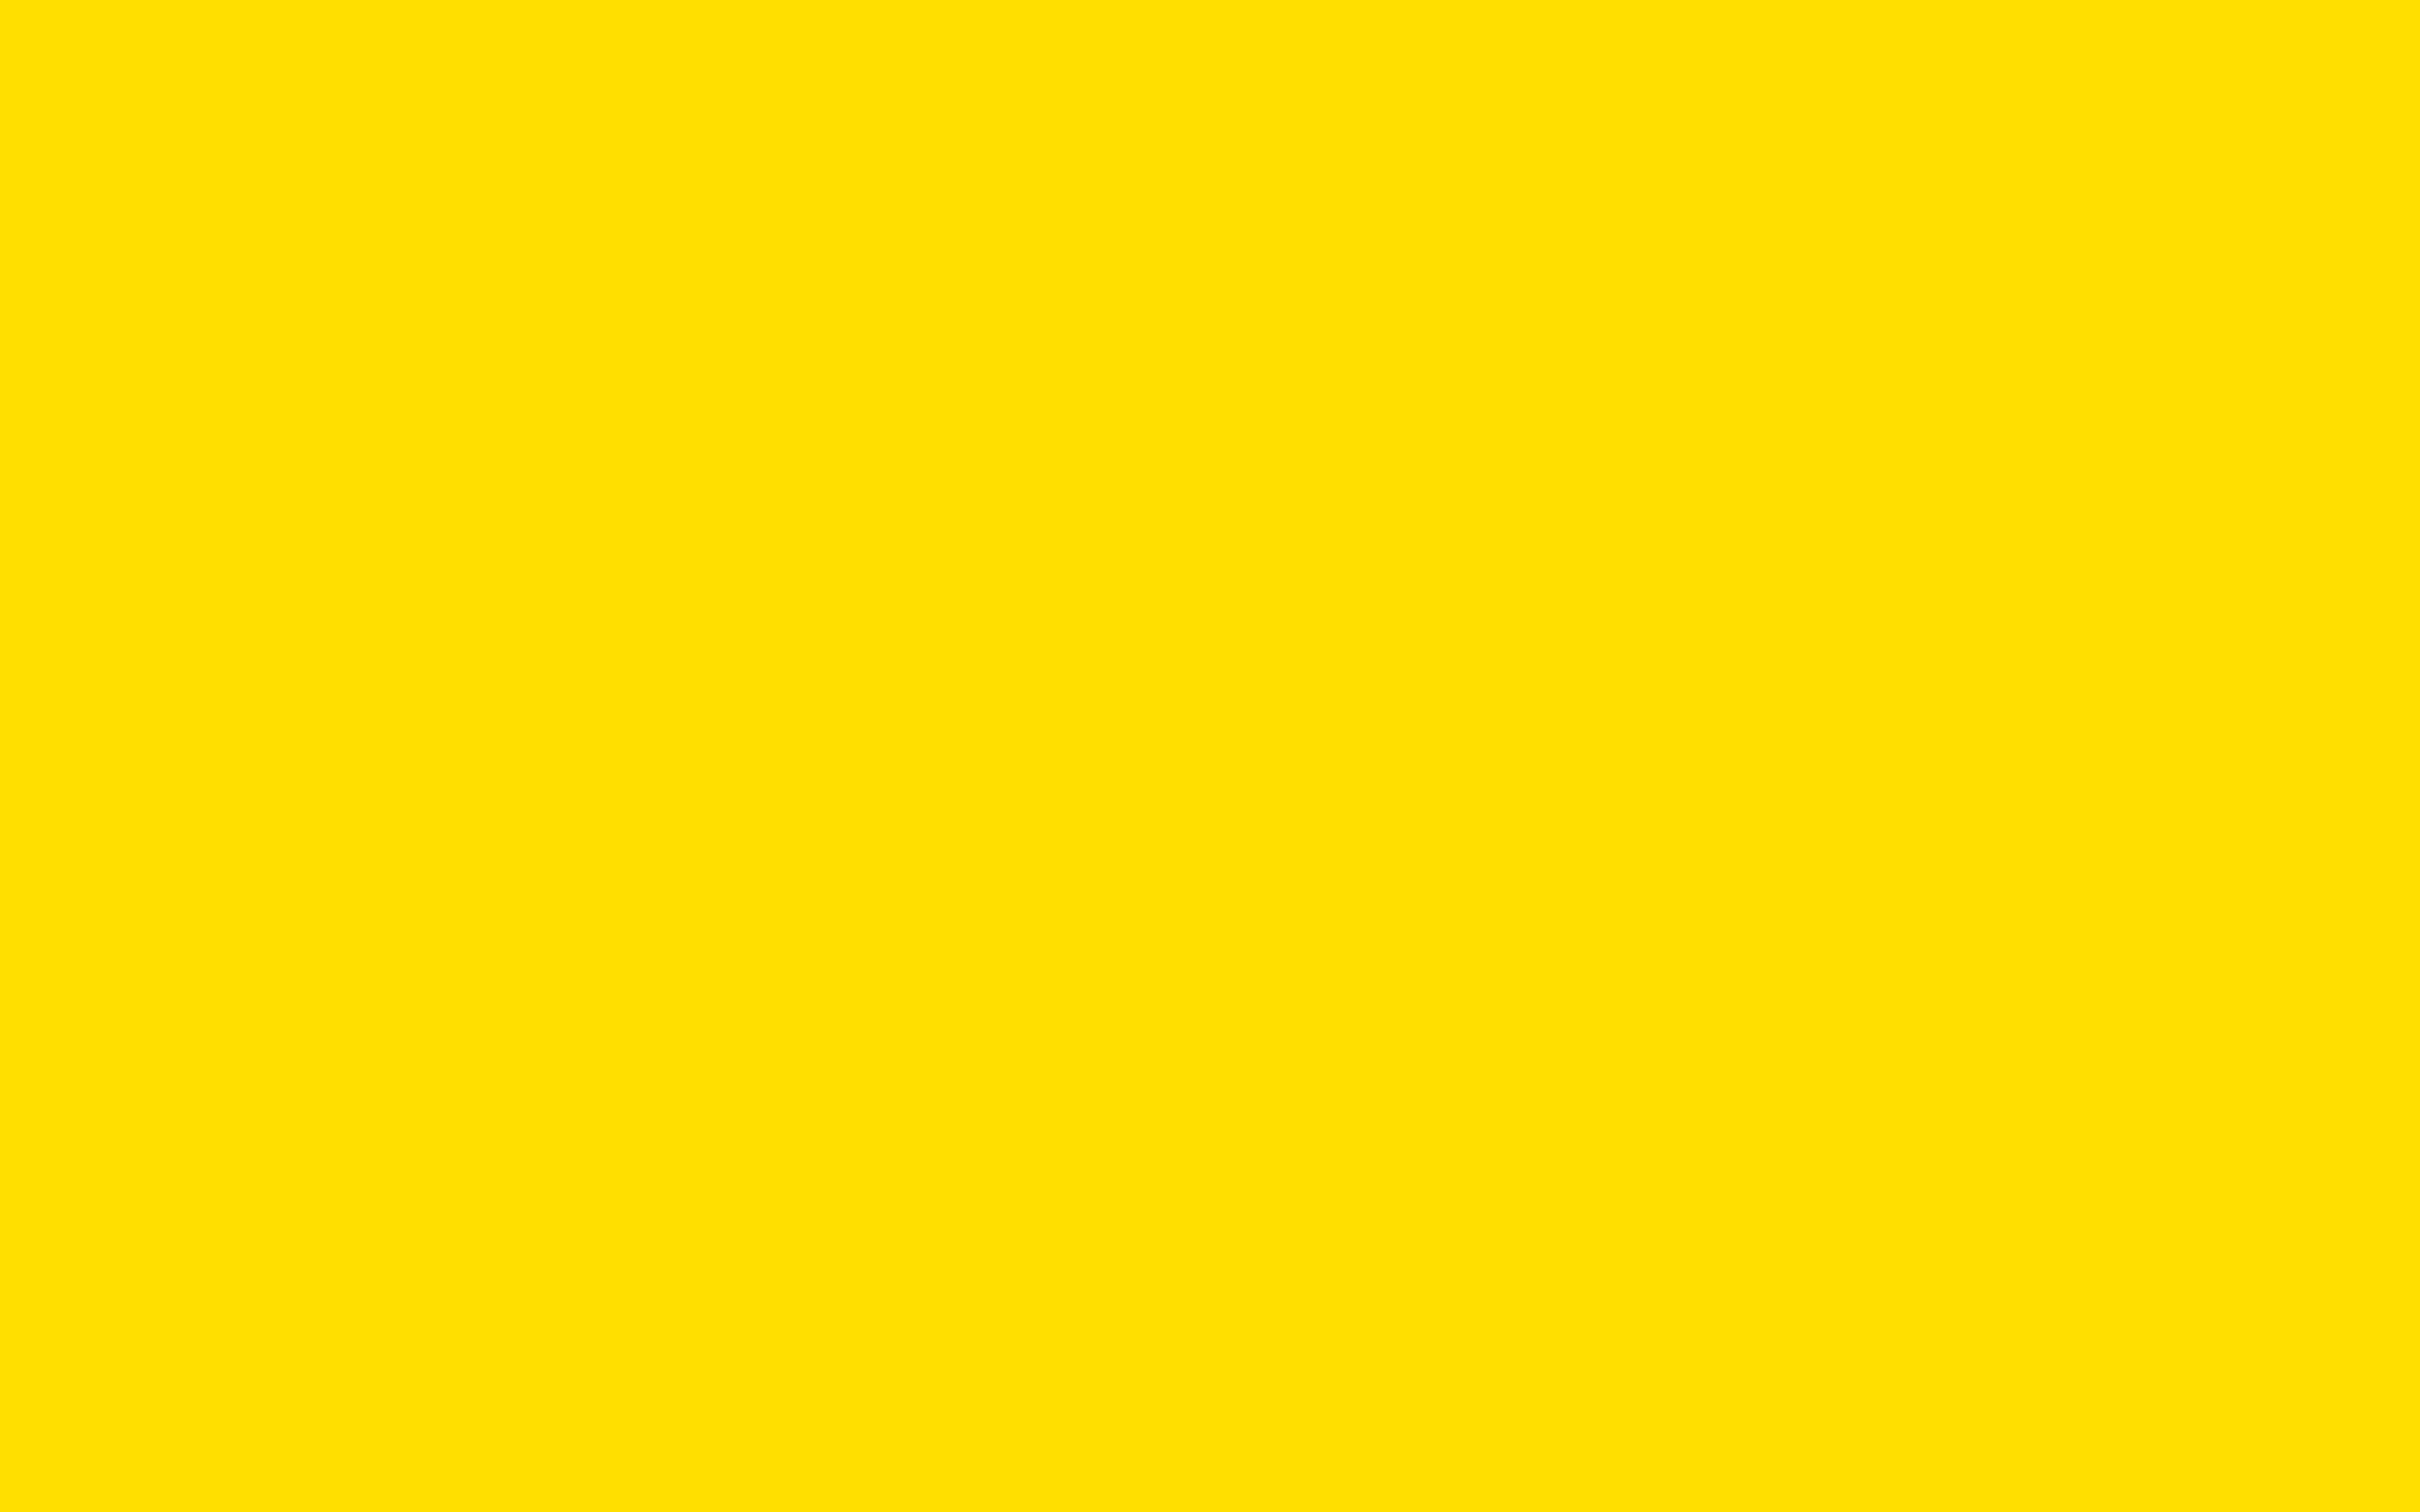 2560x1600 Golden Yellow Solid Color Background